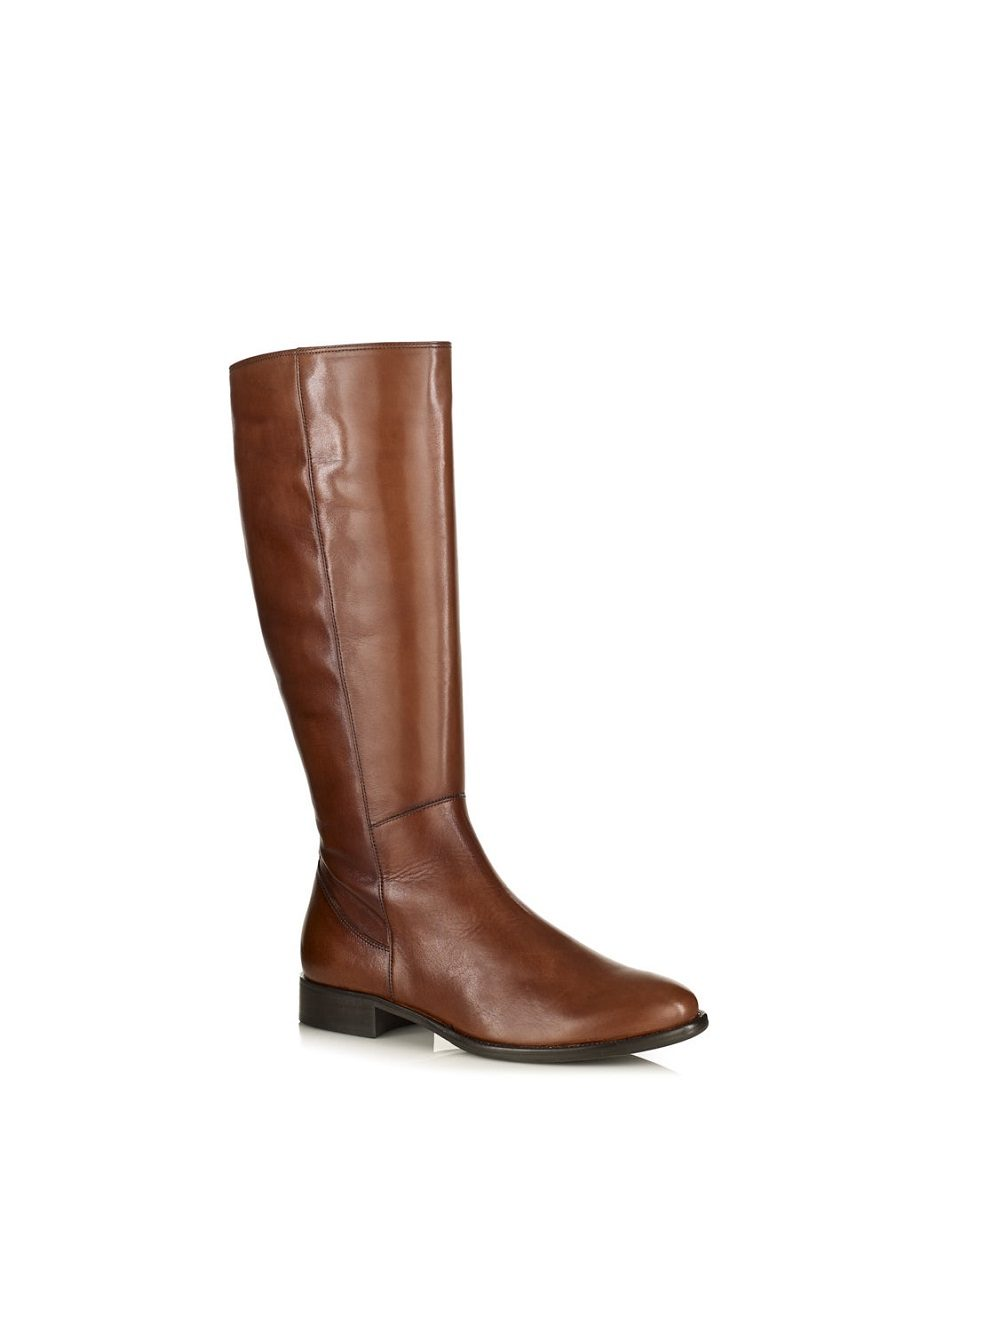 hight boot in leather cognac with python, softwaves, very comfort